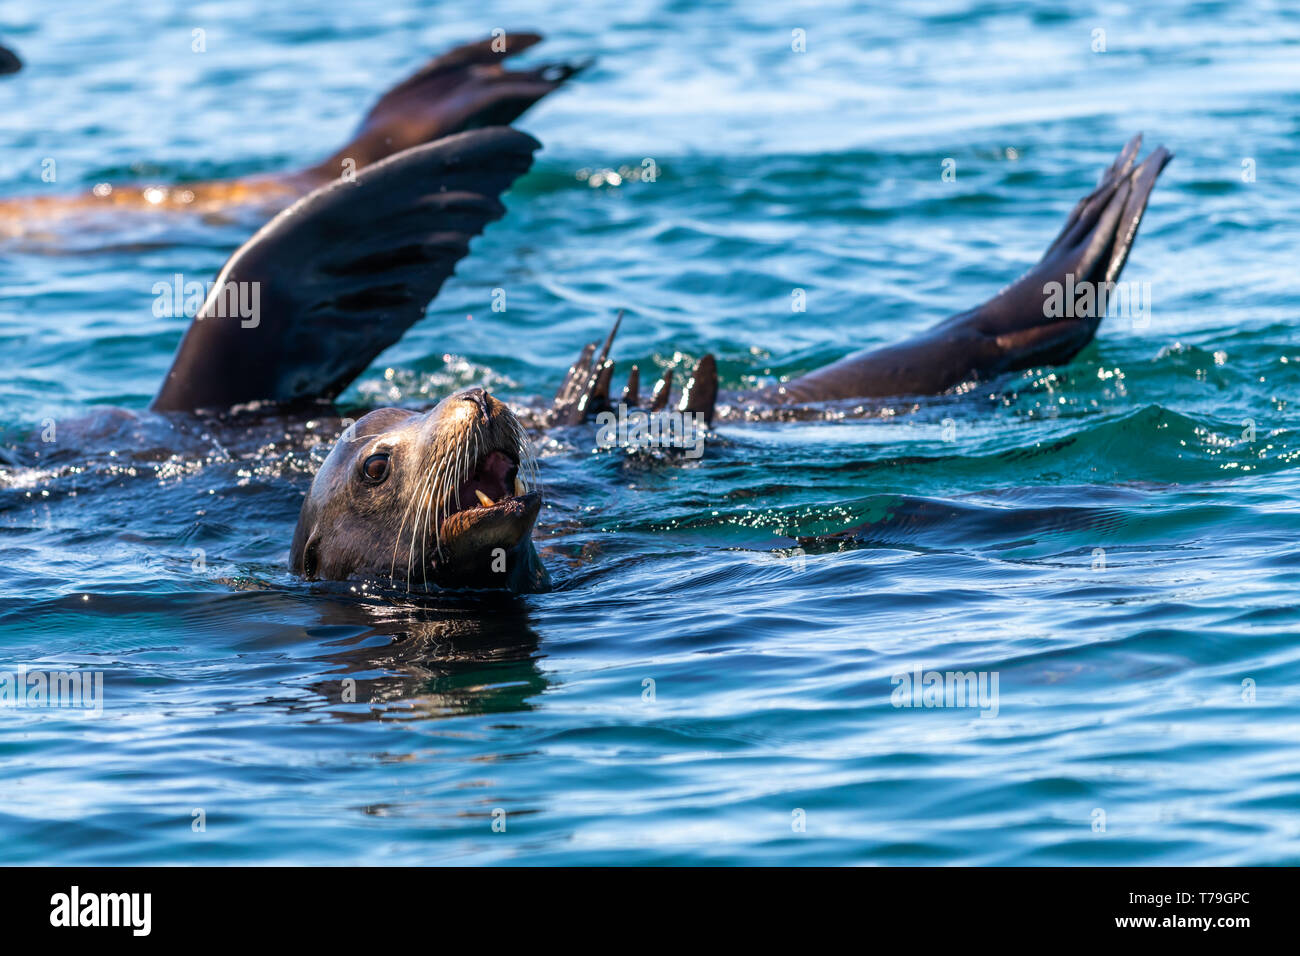 California sea lions (Zalophus californianus) thermalregulating by holding their flippers out of the water.  Baja California. Stock Photo